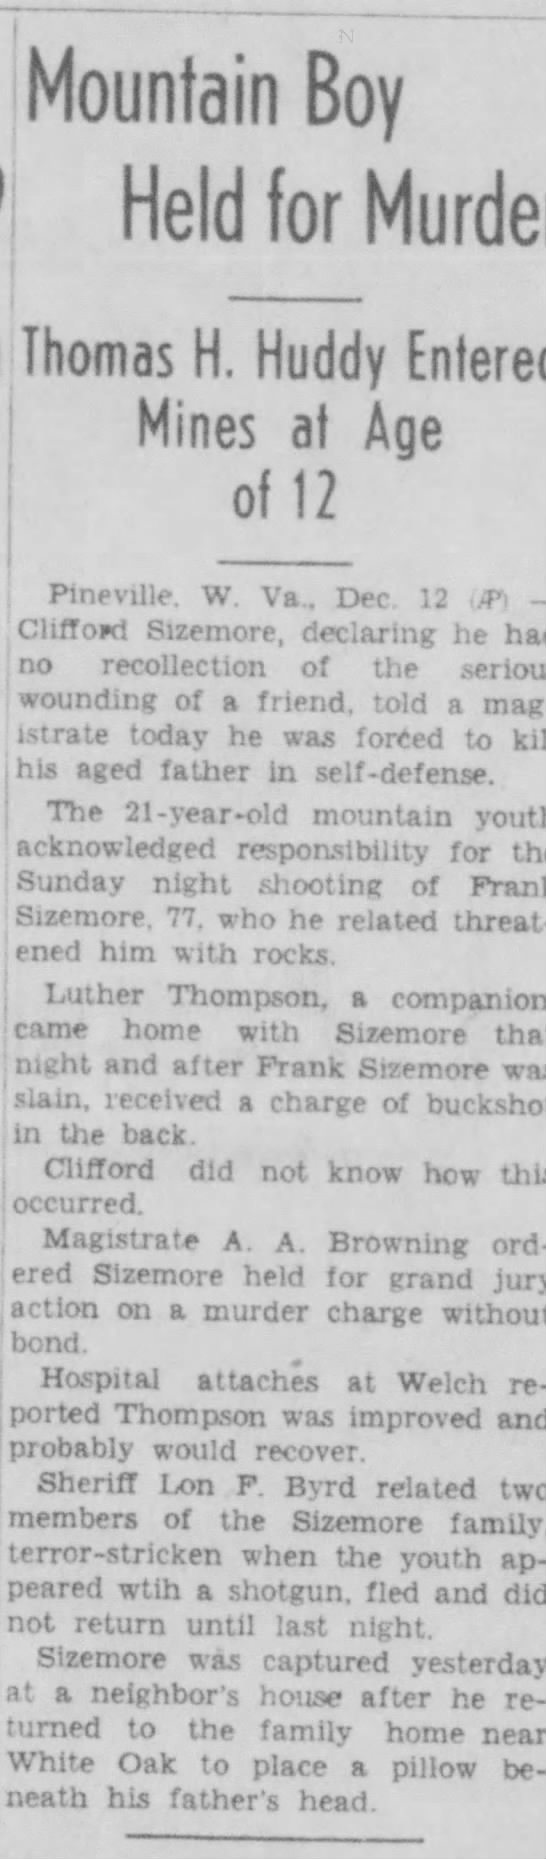 Franklin 'Frank' Sizemore & son Clifford Sizemore - (Mountain Boy Held for Murder Thomas H. Huddy...